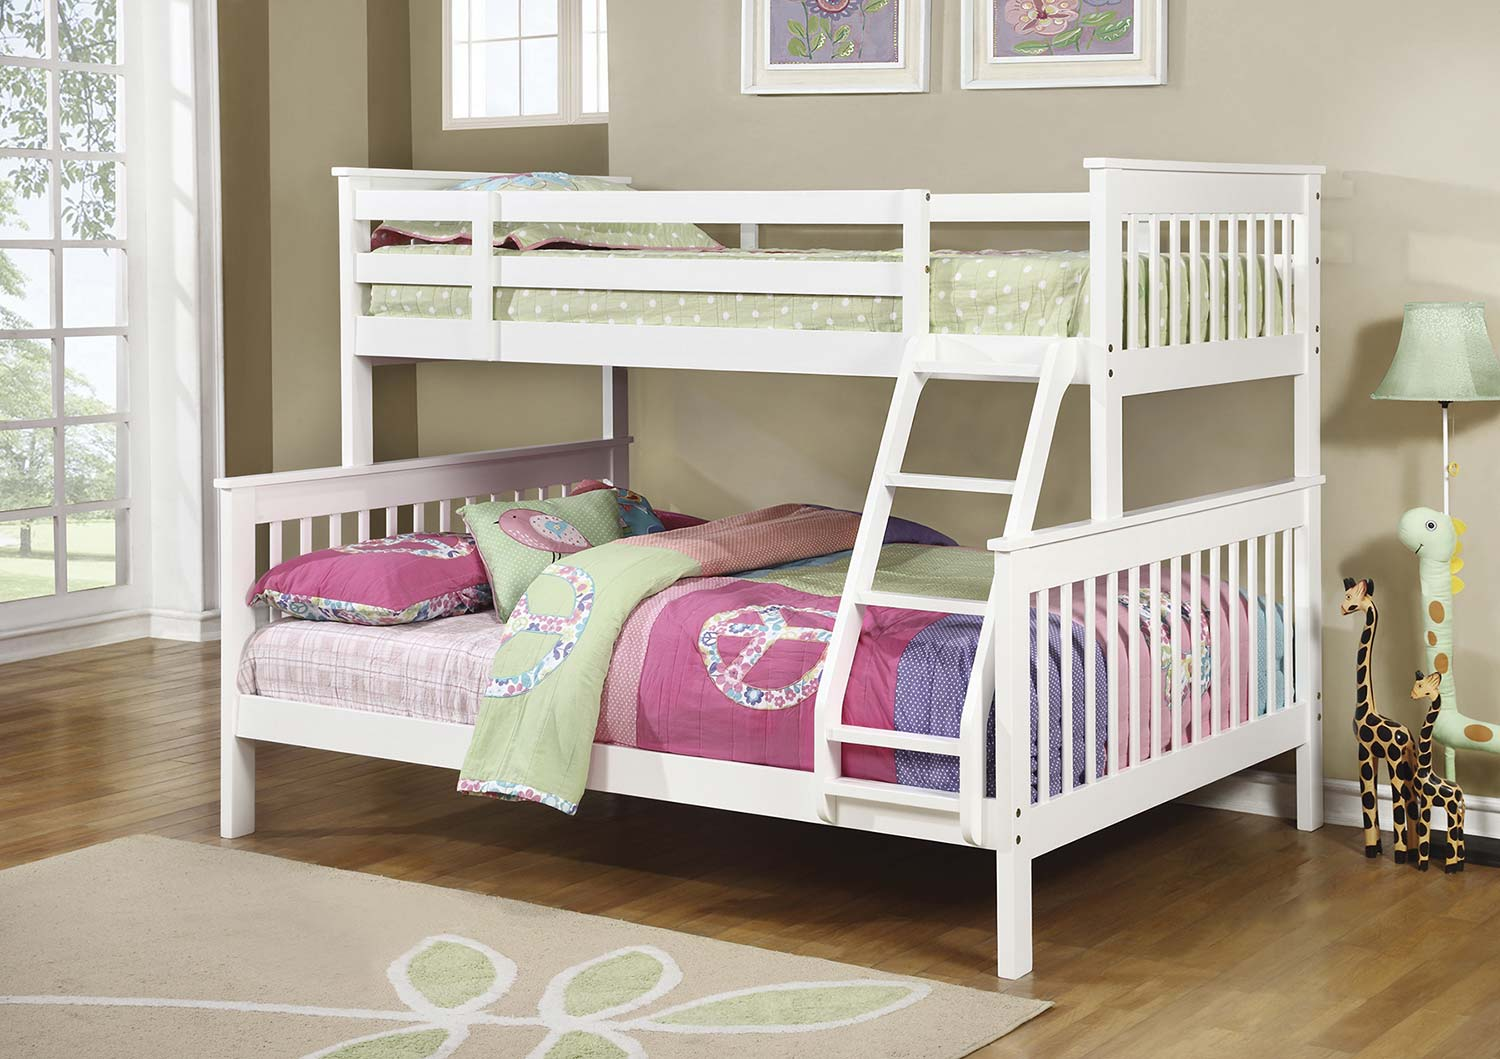 Coaster Chapman Twin/Full Size Bunk Bed - White